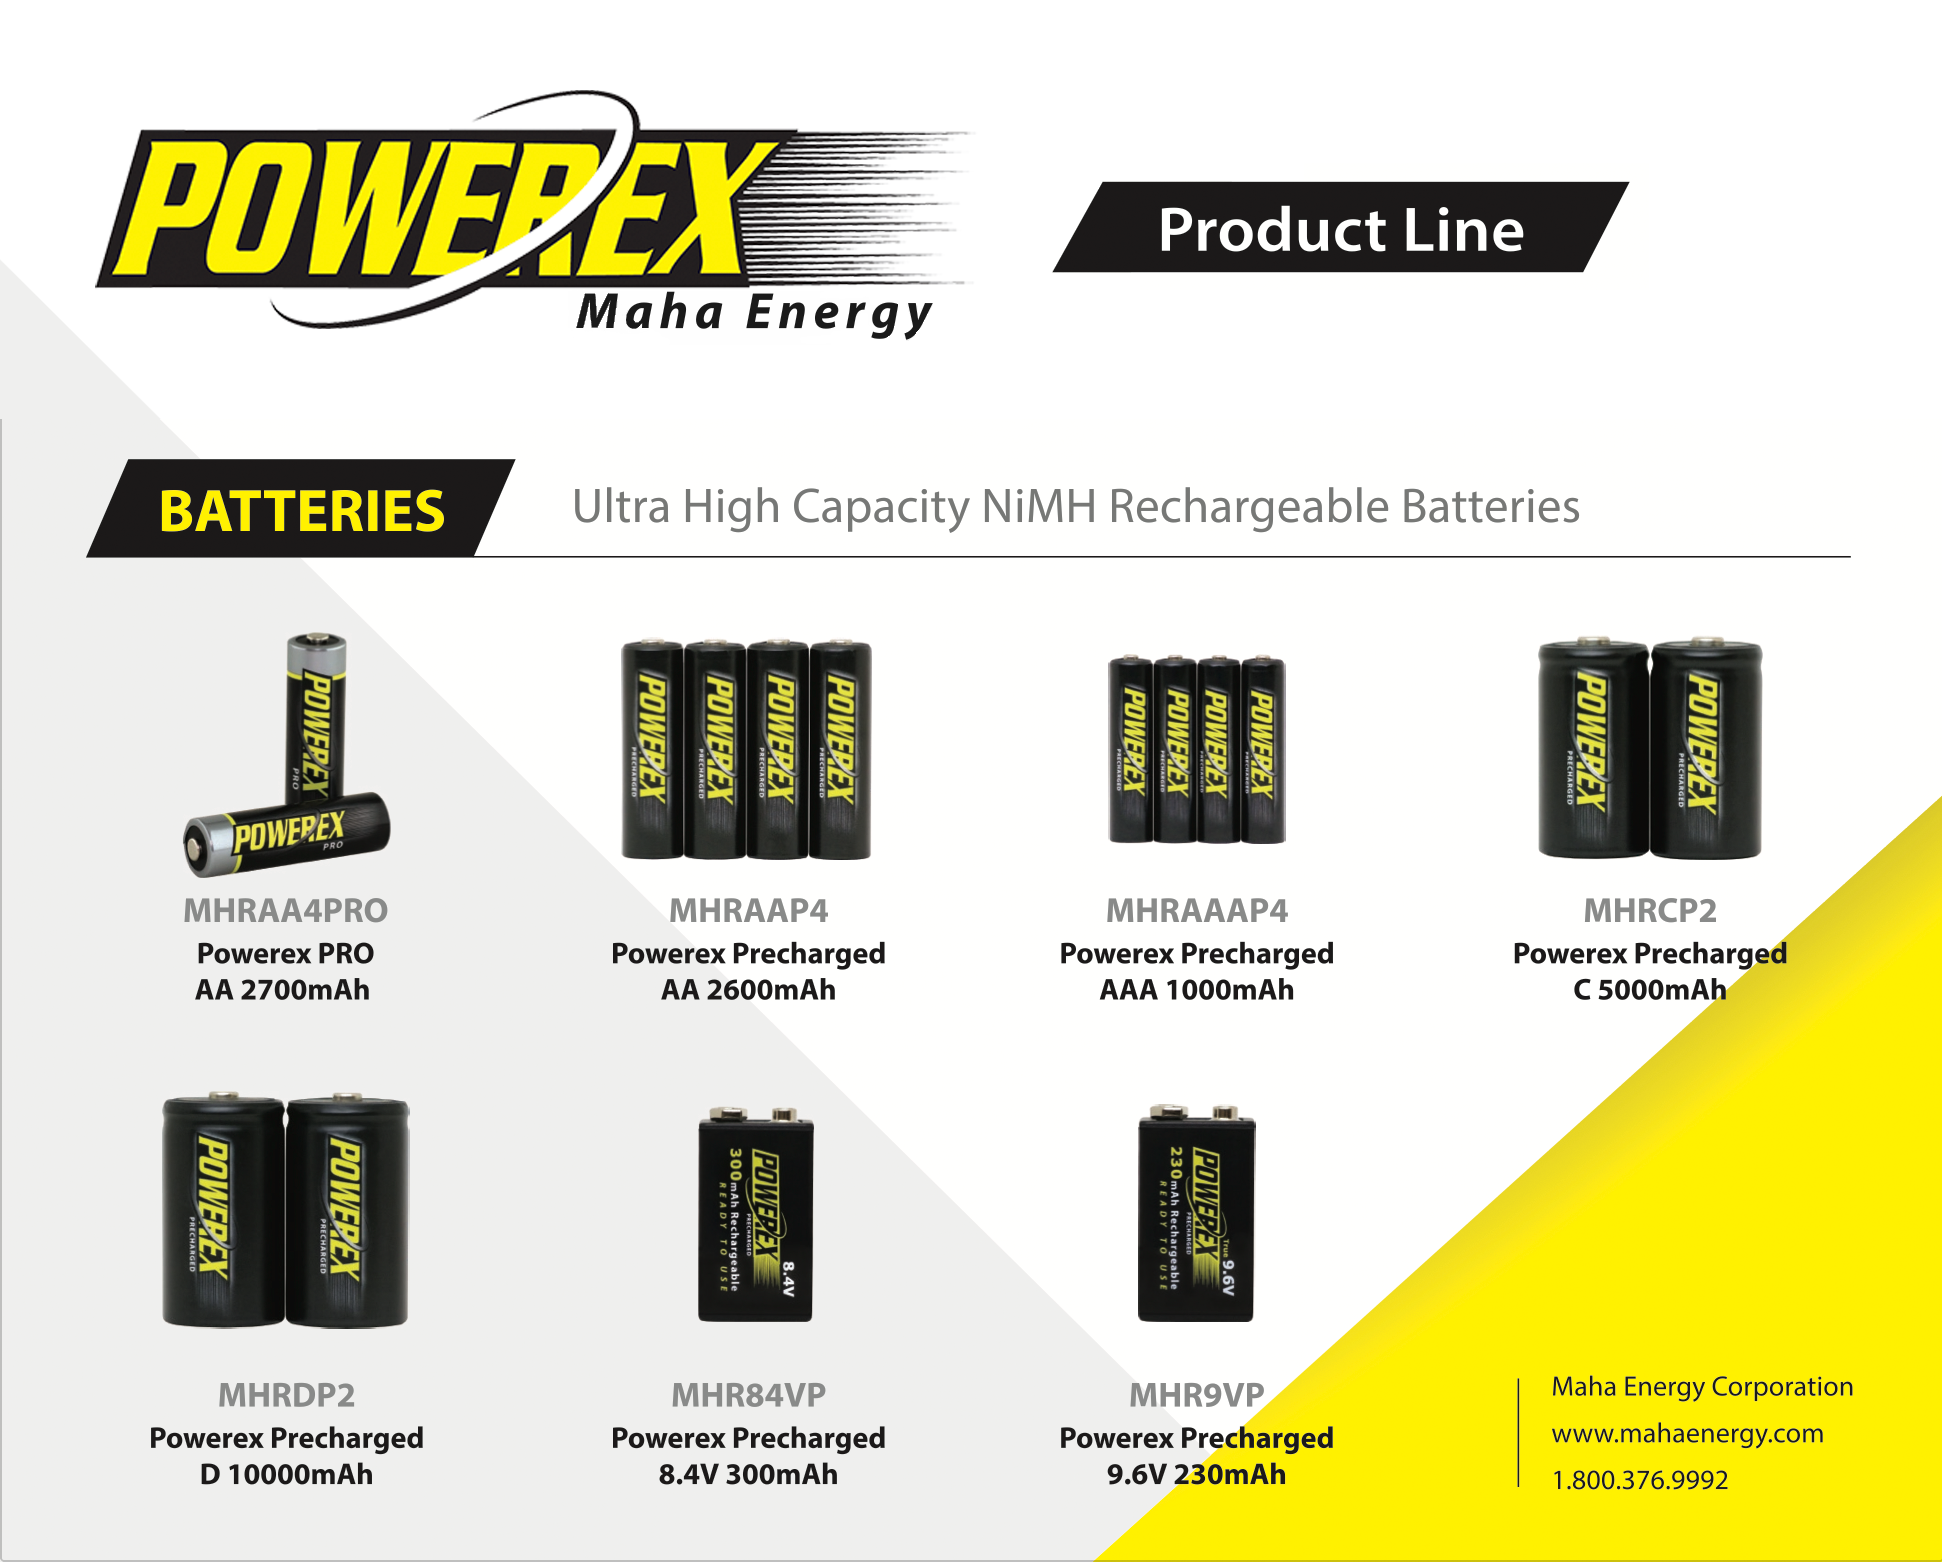 Maha Powerex PRECHARGED - 9.6V Battery - 230mAh